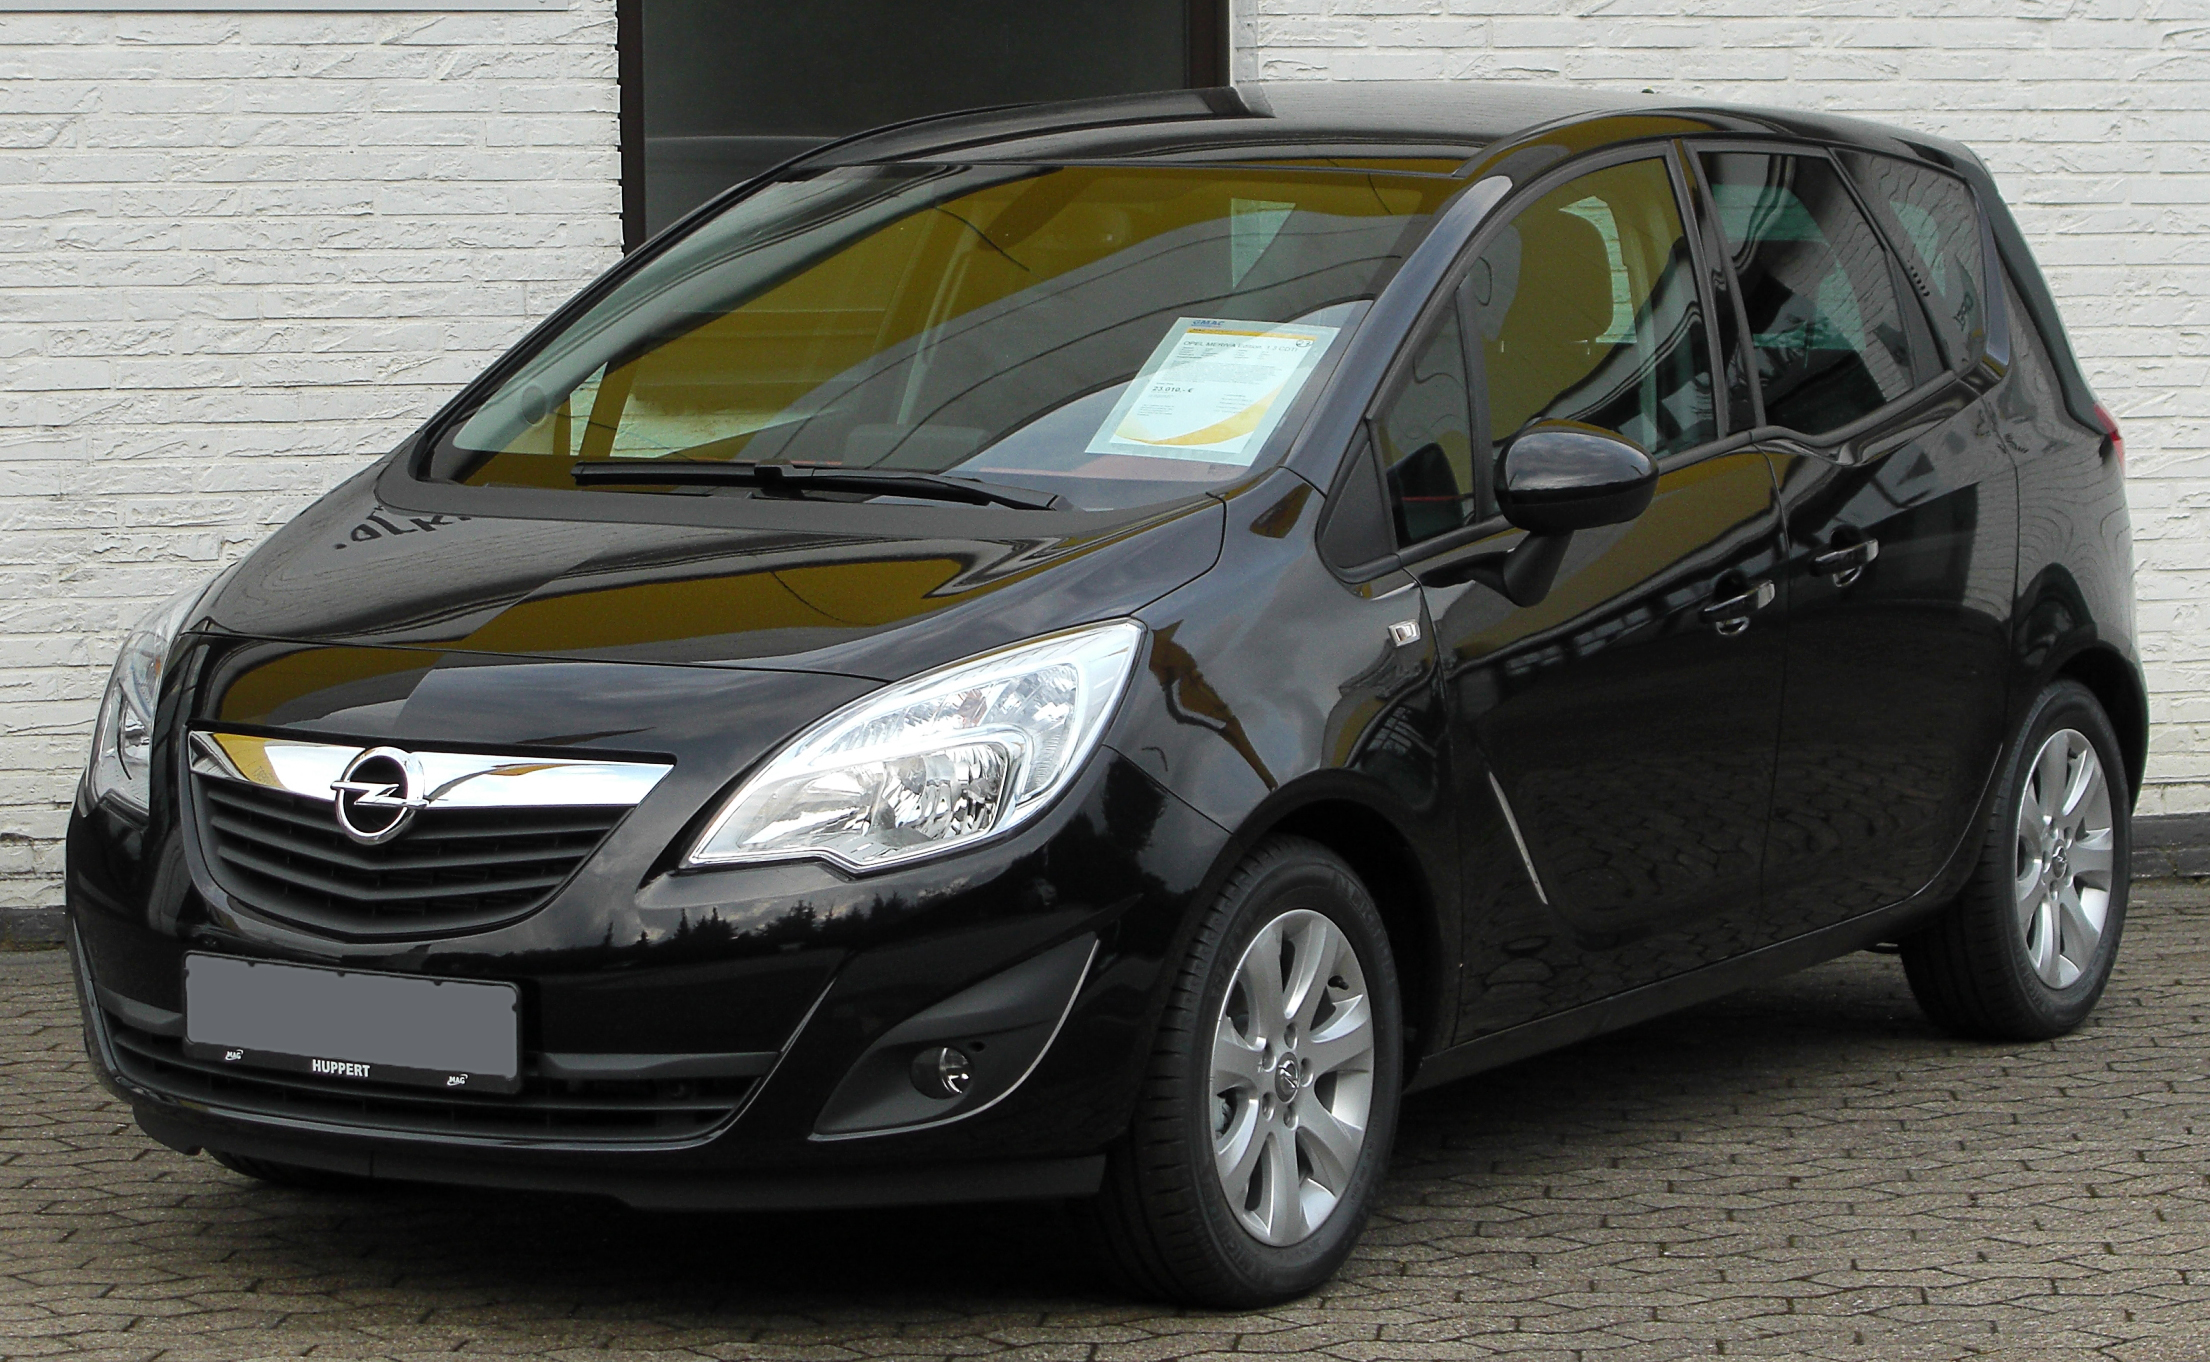 opel meriva 1 3 cdti photos and comments. Black Bedroom Furniture Sets. Home Design Ideas